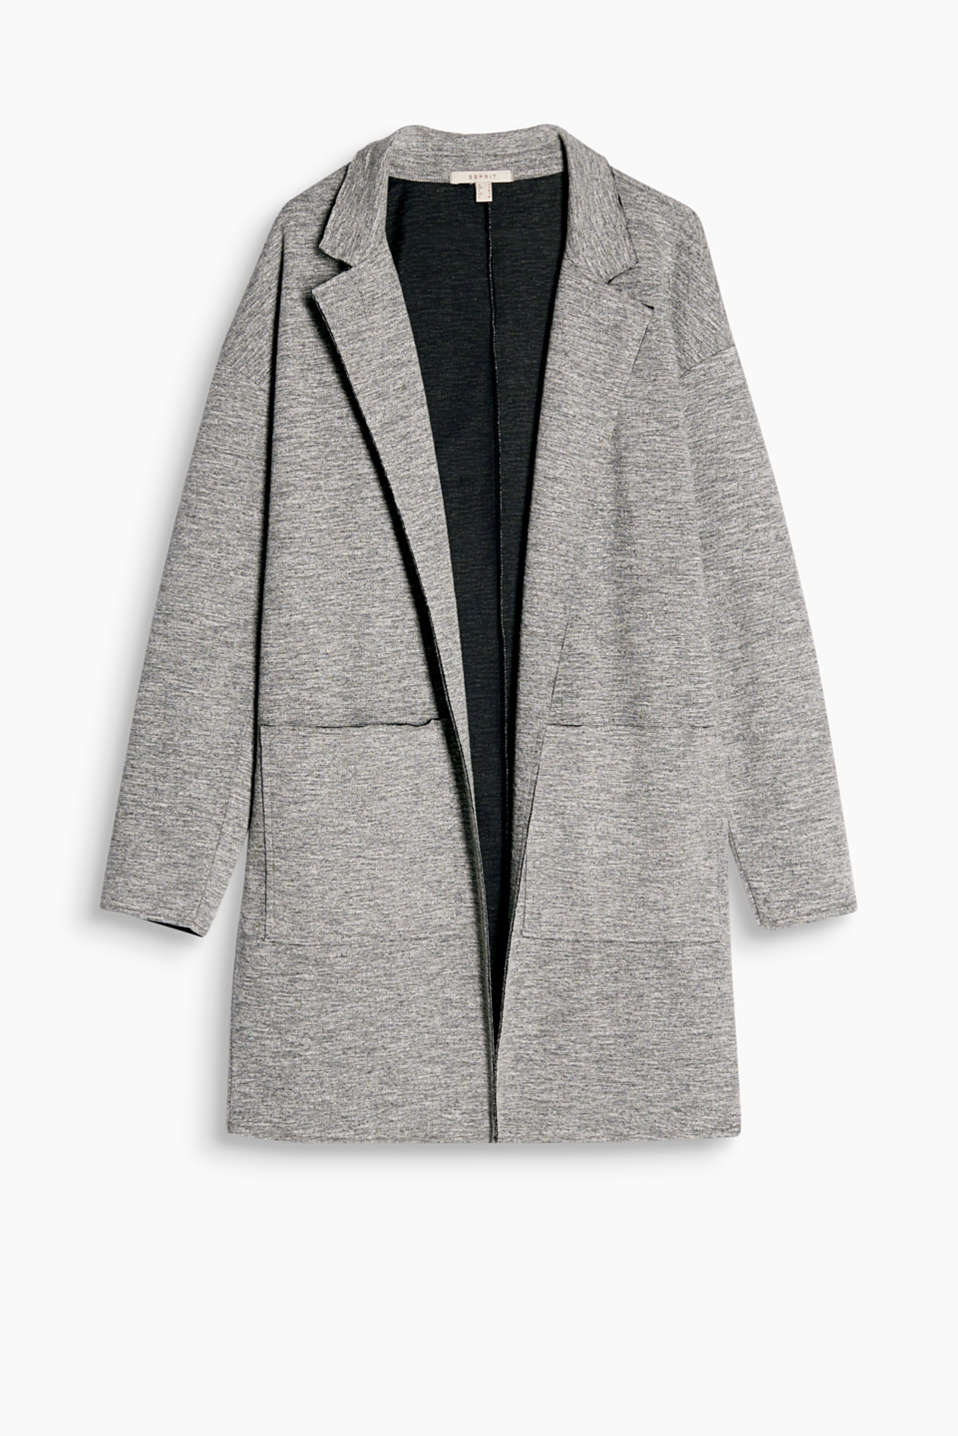 Melange sweatshirt cardigan with unneatened edges, a lapel and patch pockets